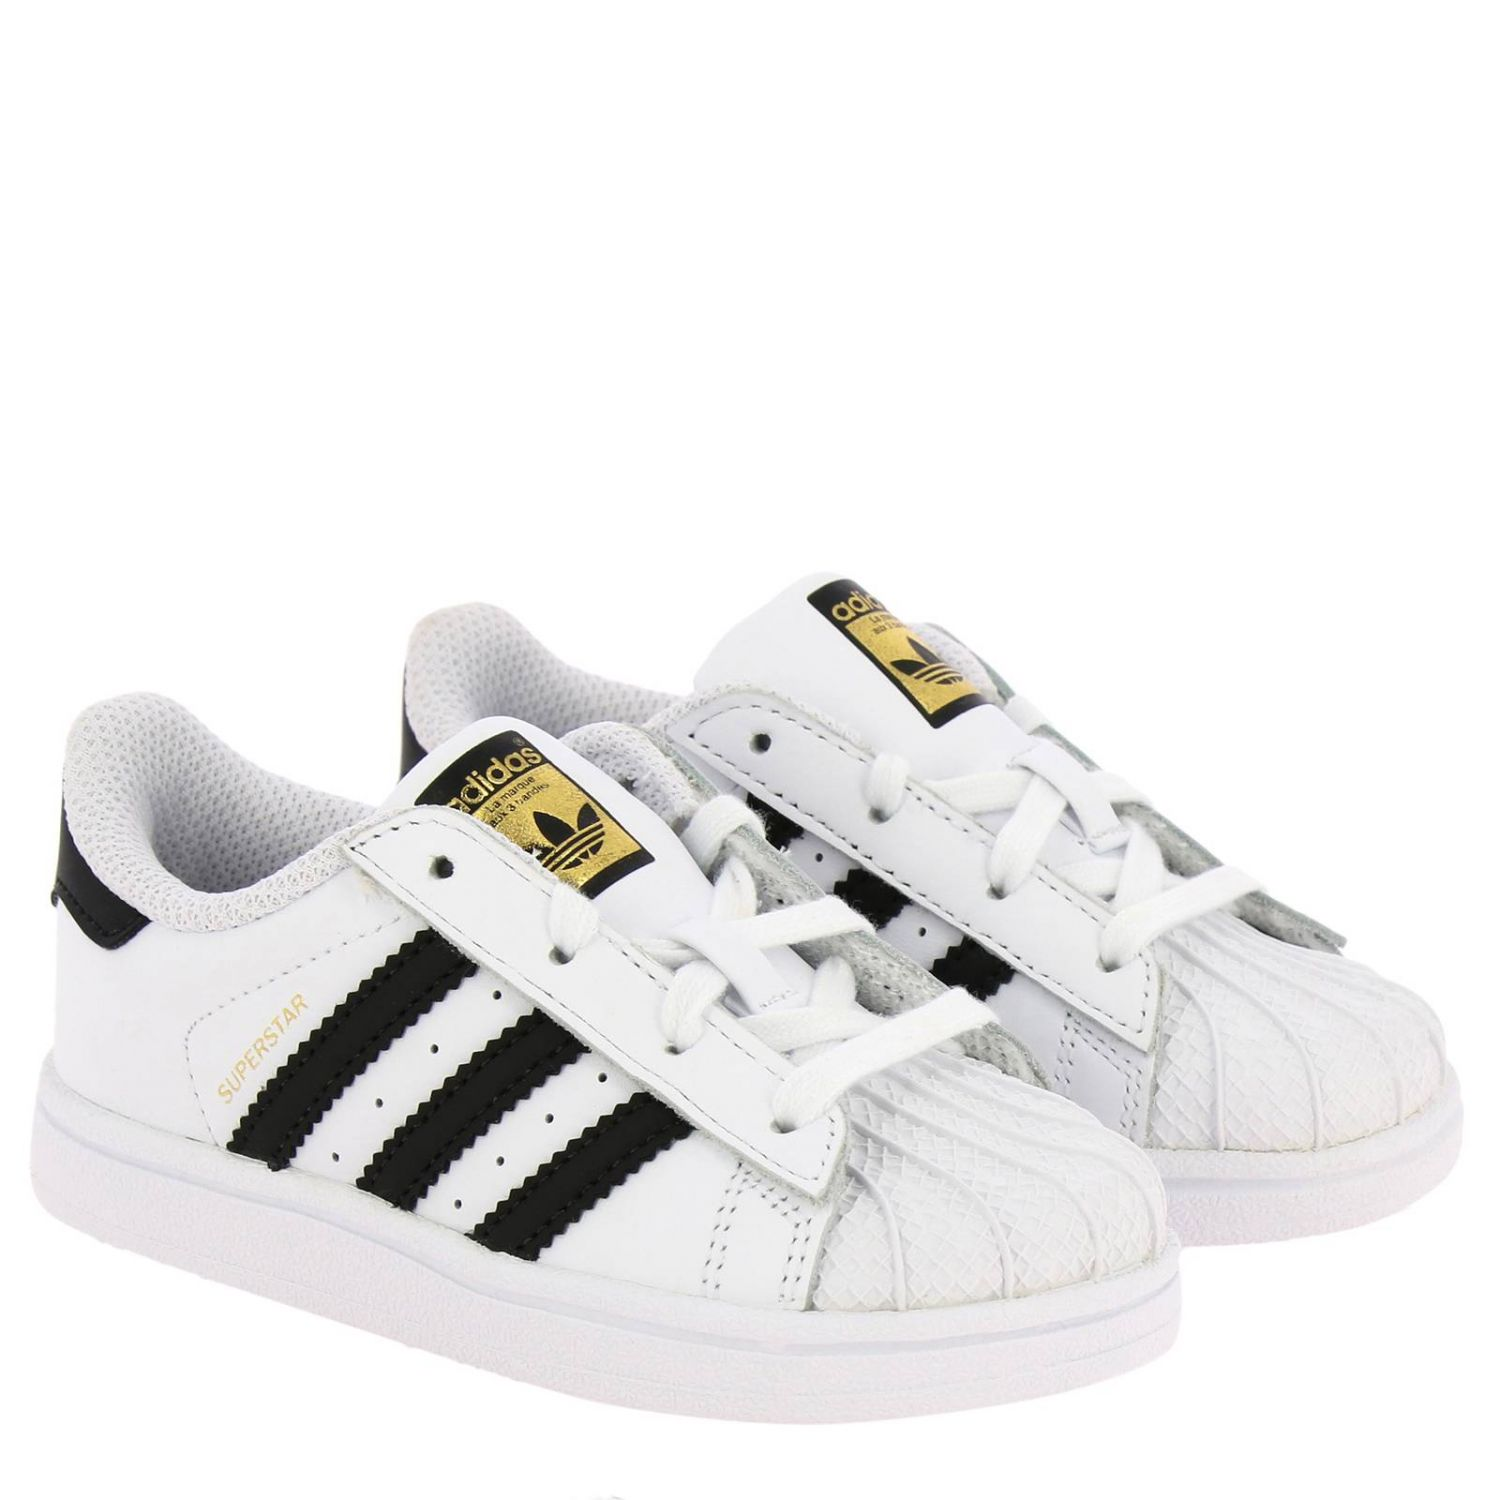 Adidas Originals Superstar Sneakers in leather with 3 contrasting stripes white 2